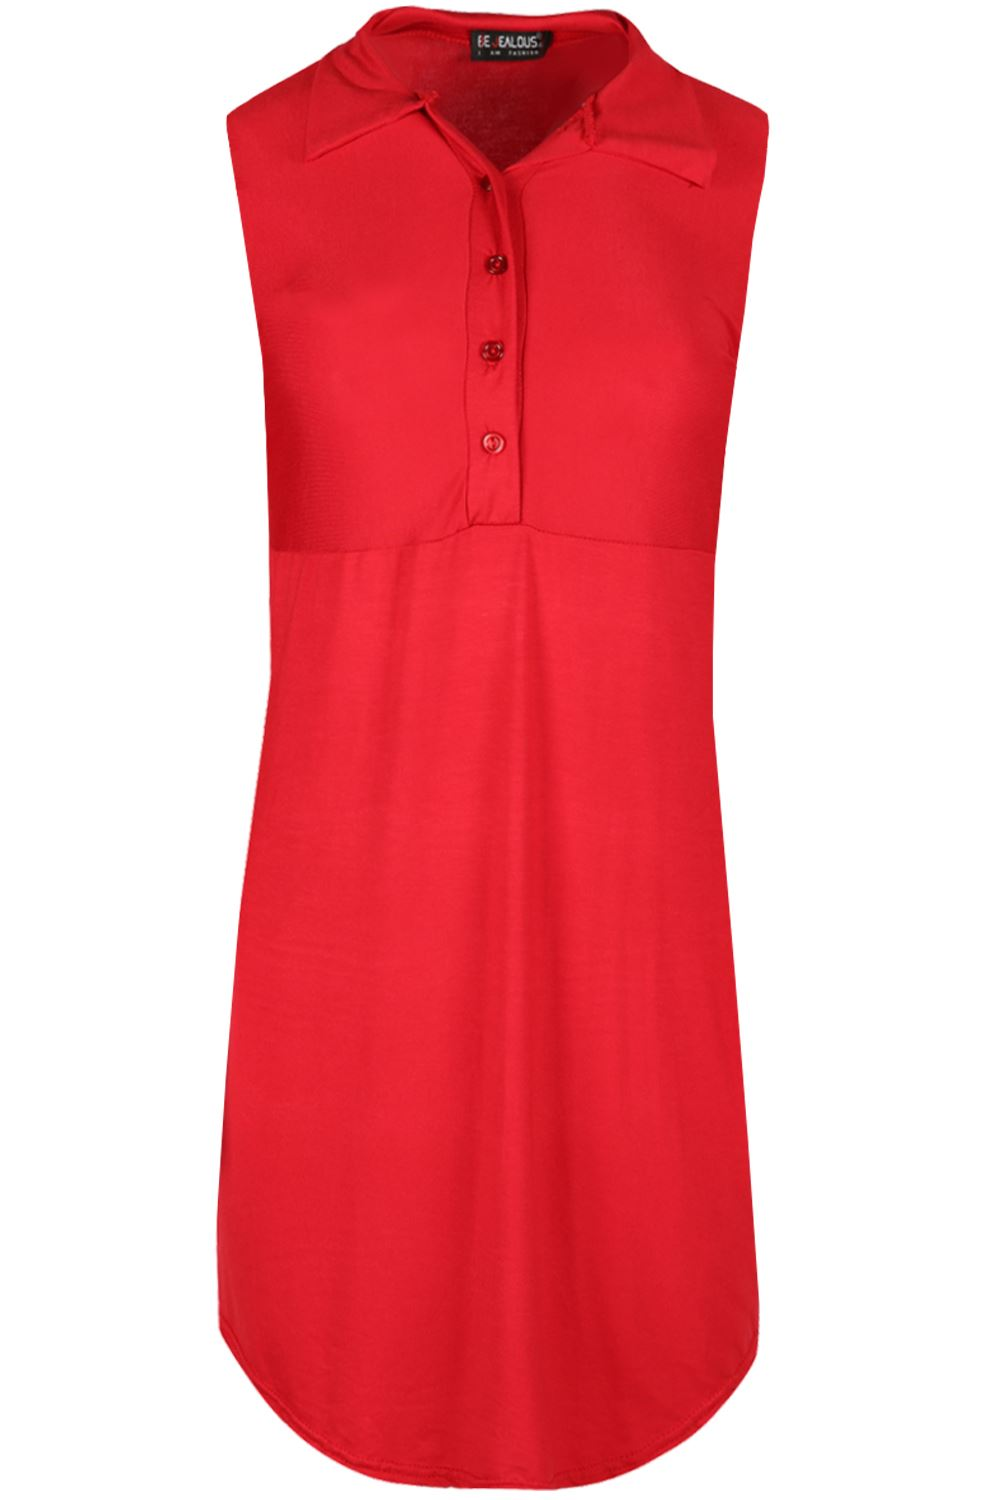 Womens sleeveless collared curved hem front button ladies for Sleeveless dress shirt womens